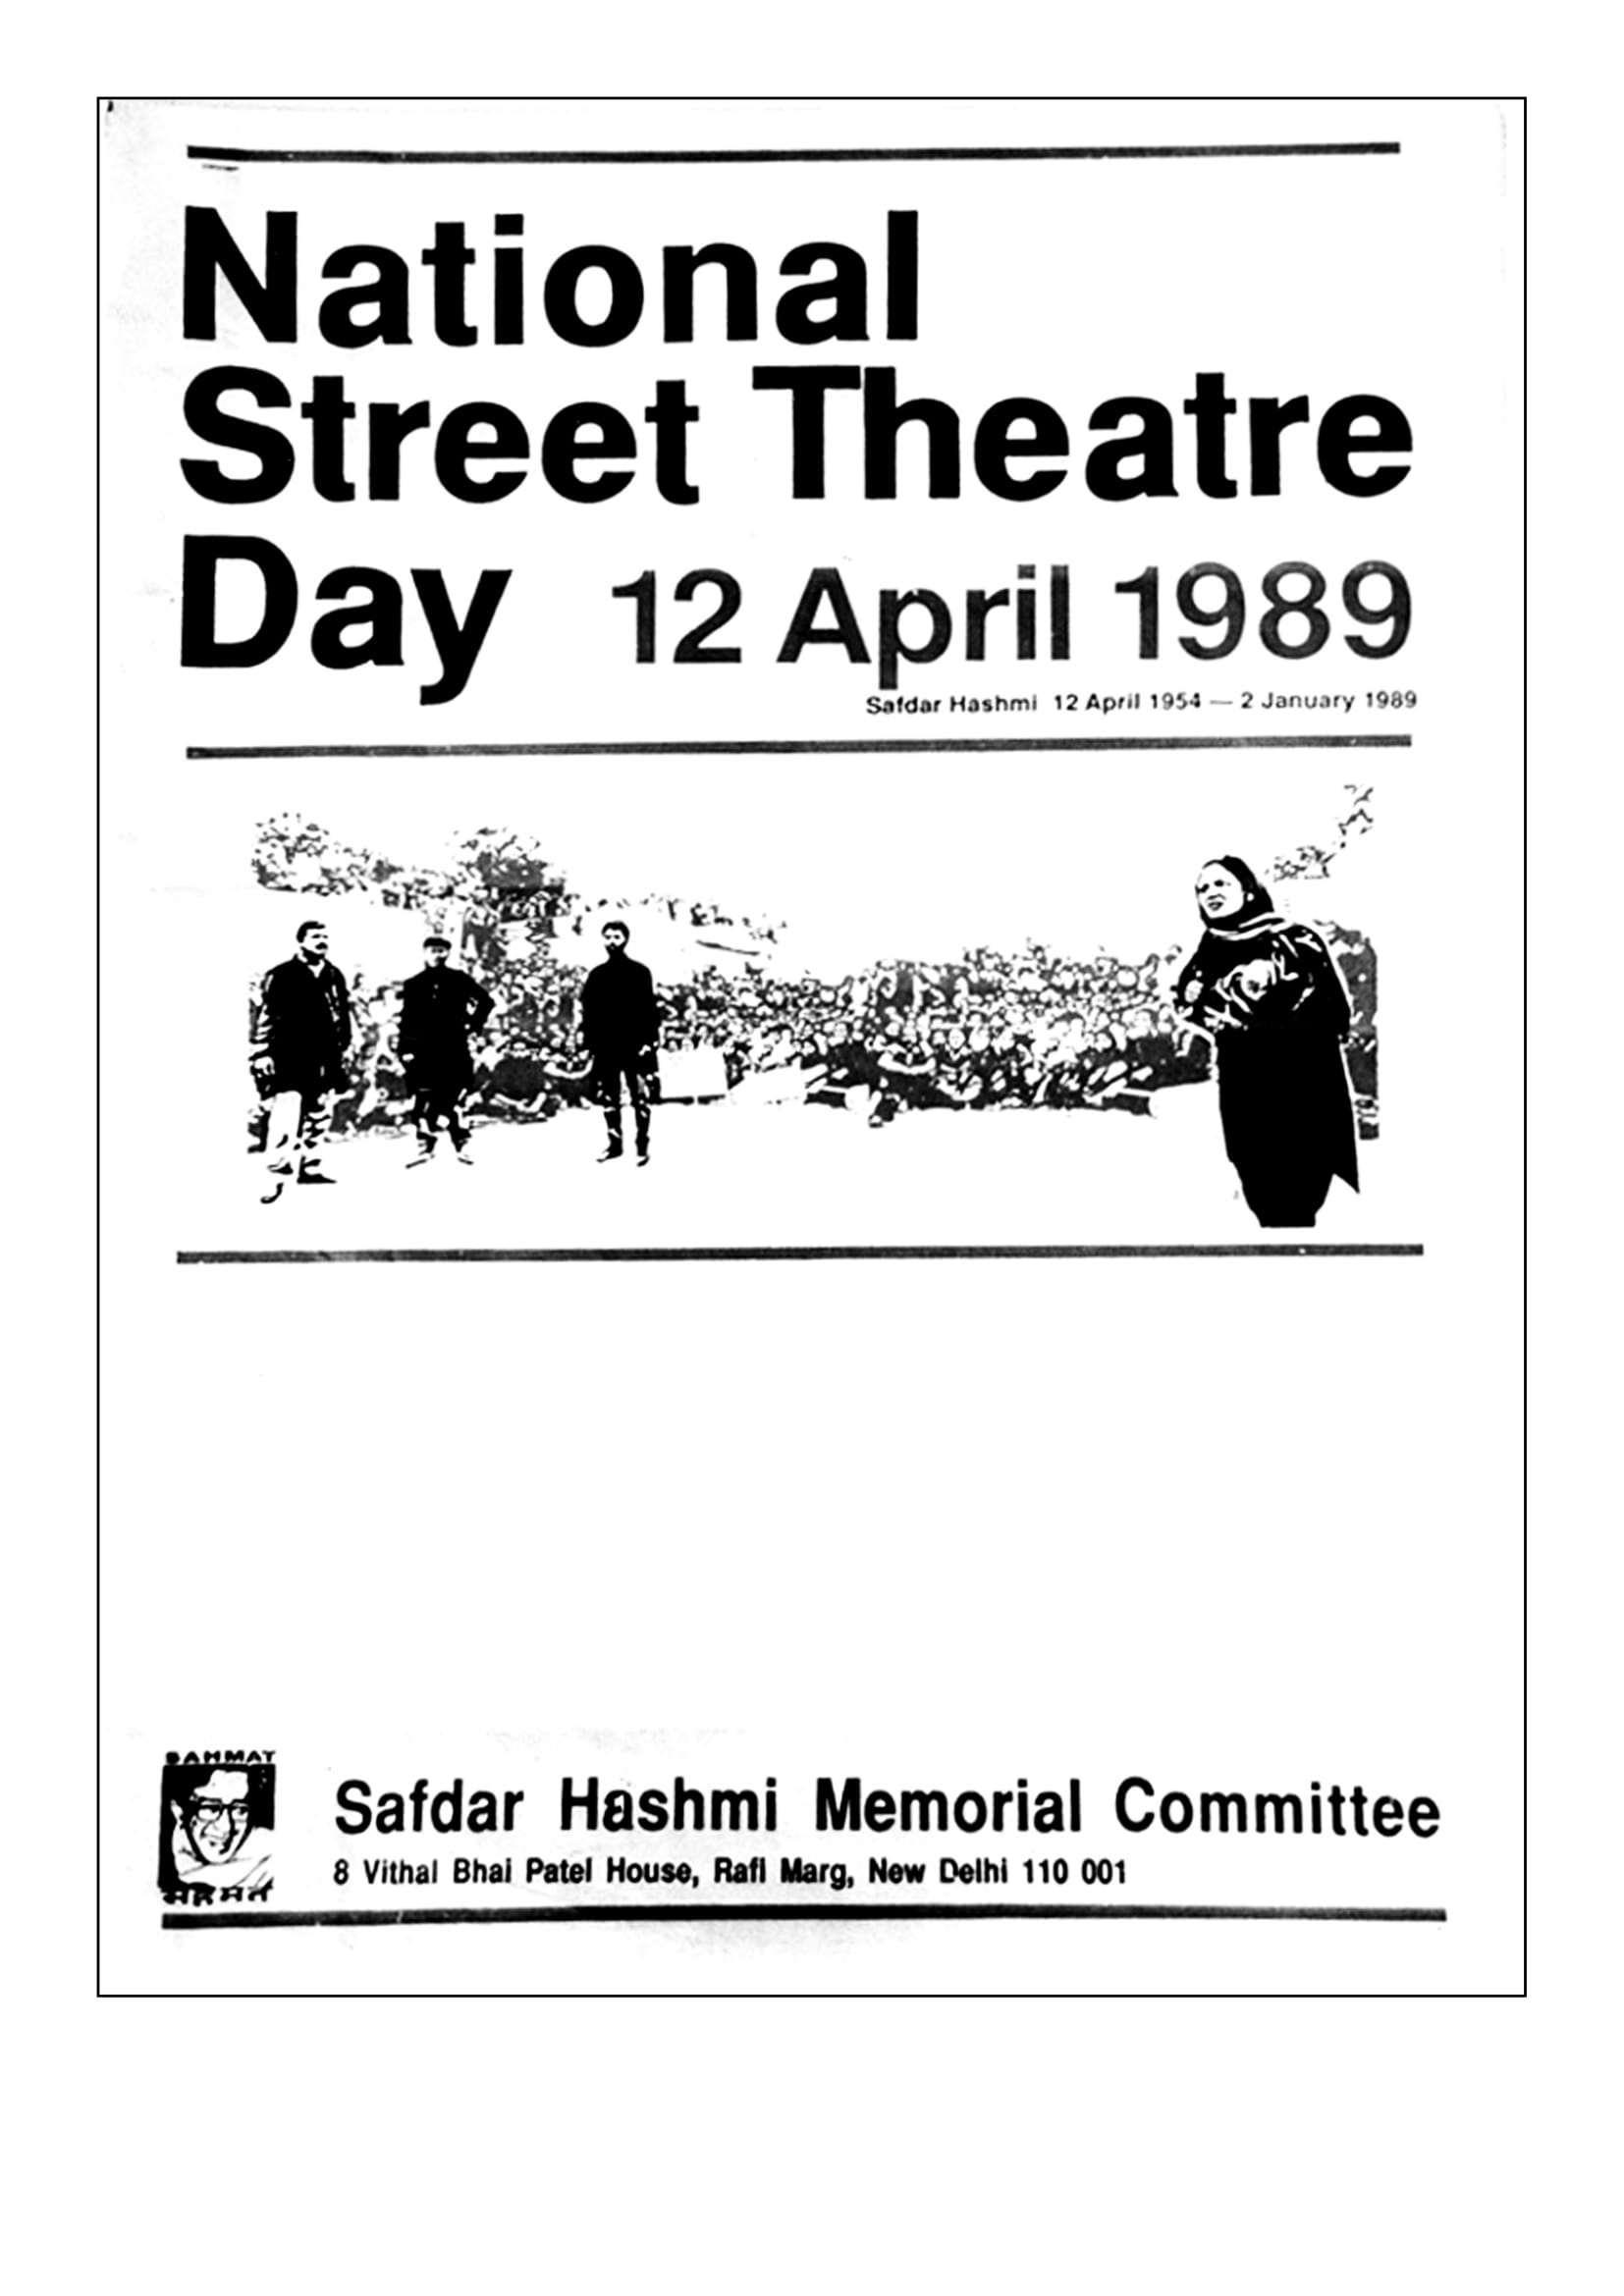 The first poster released by Sahmat in 1989.